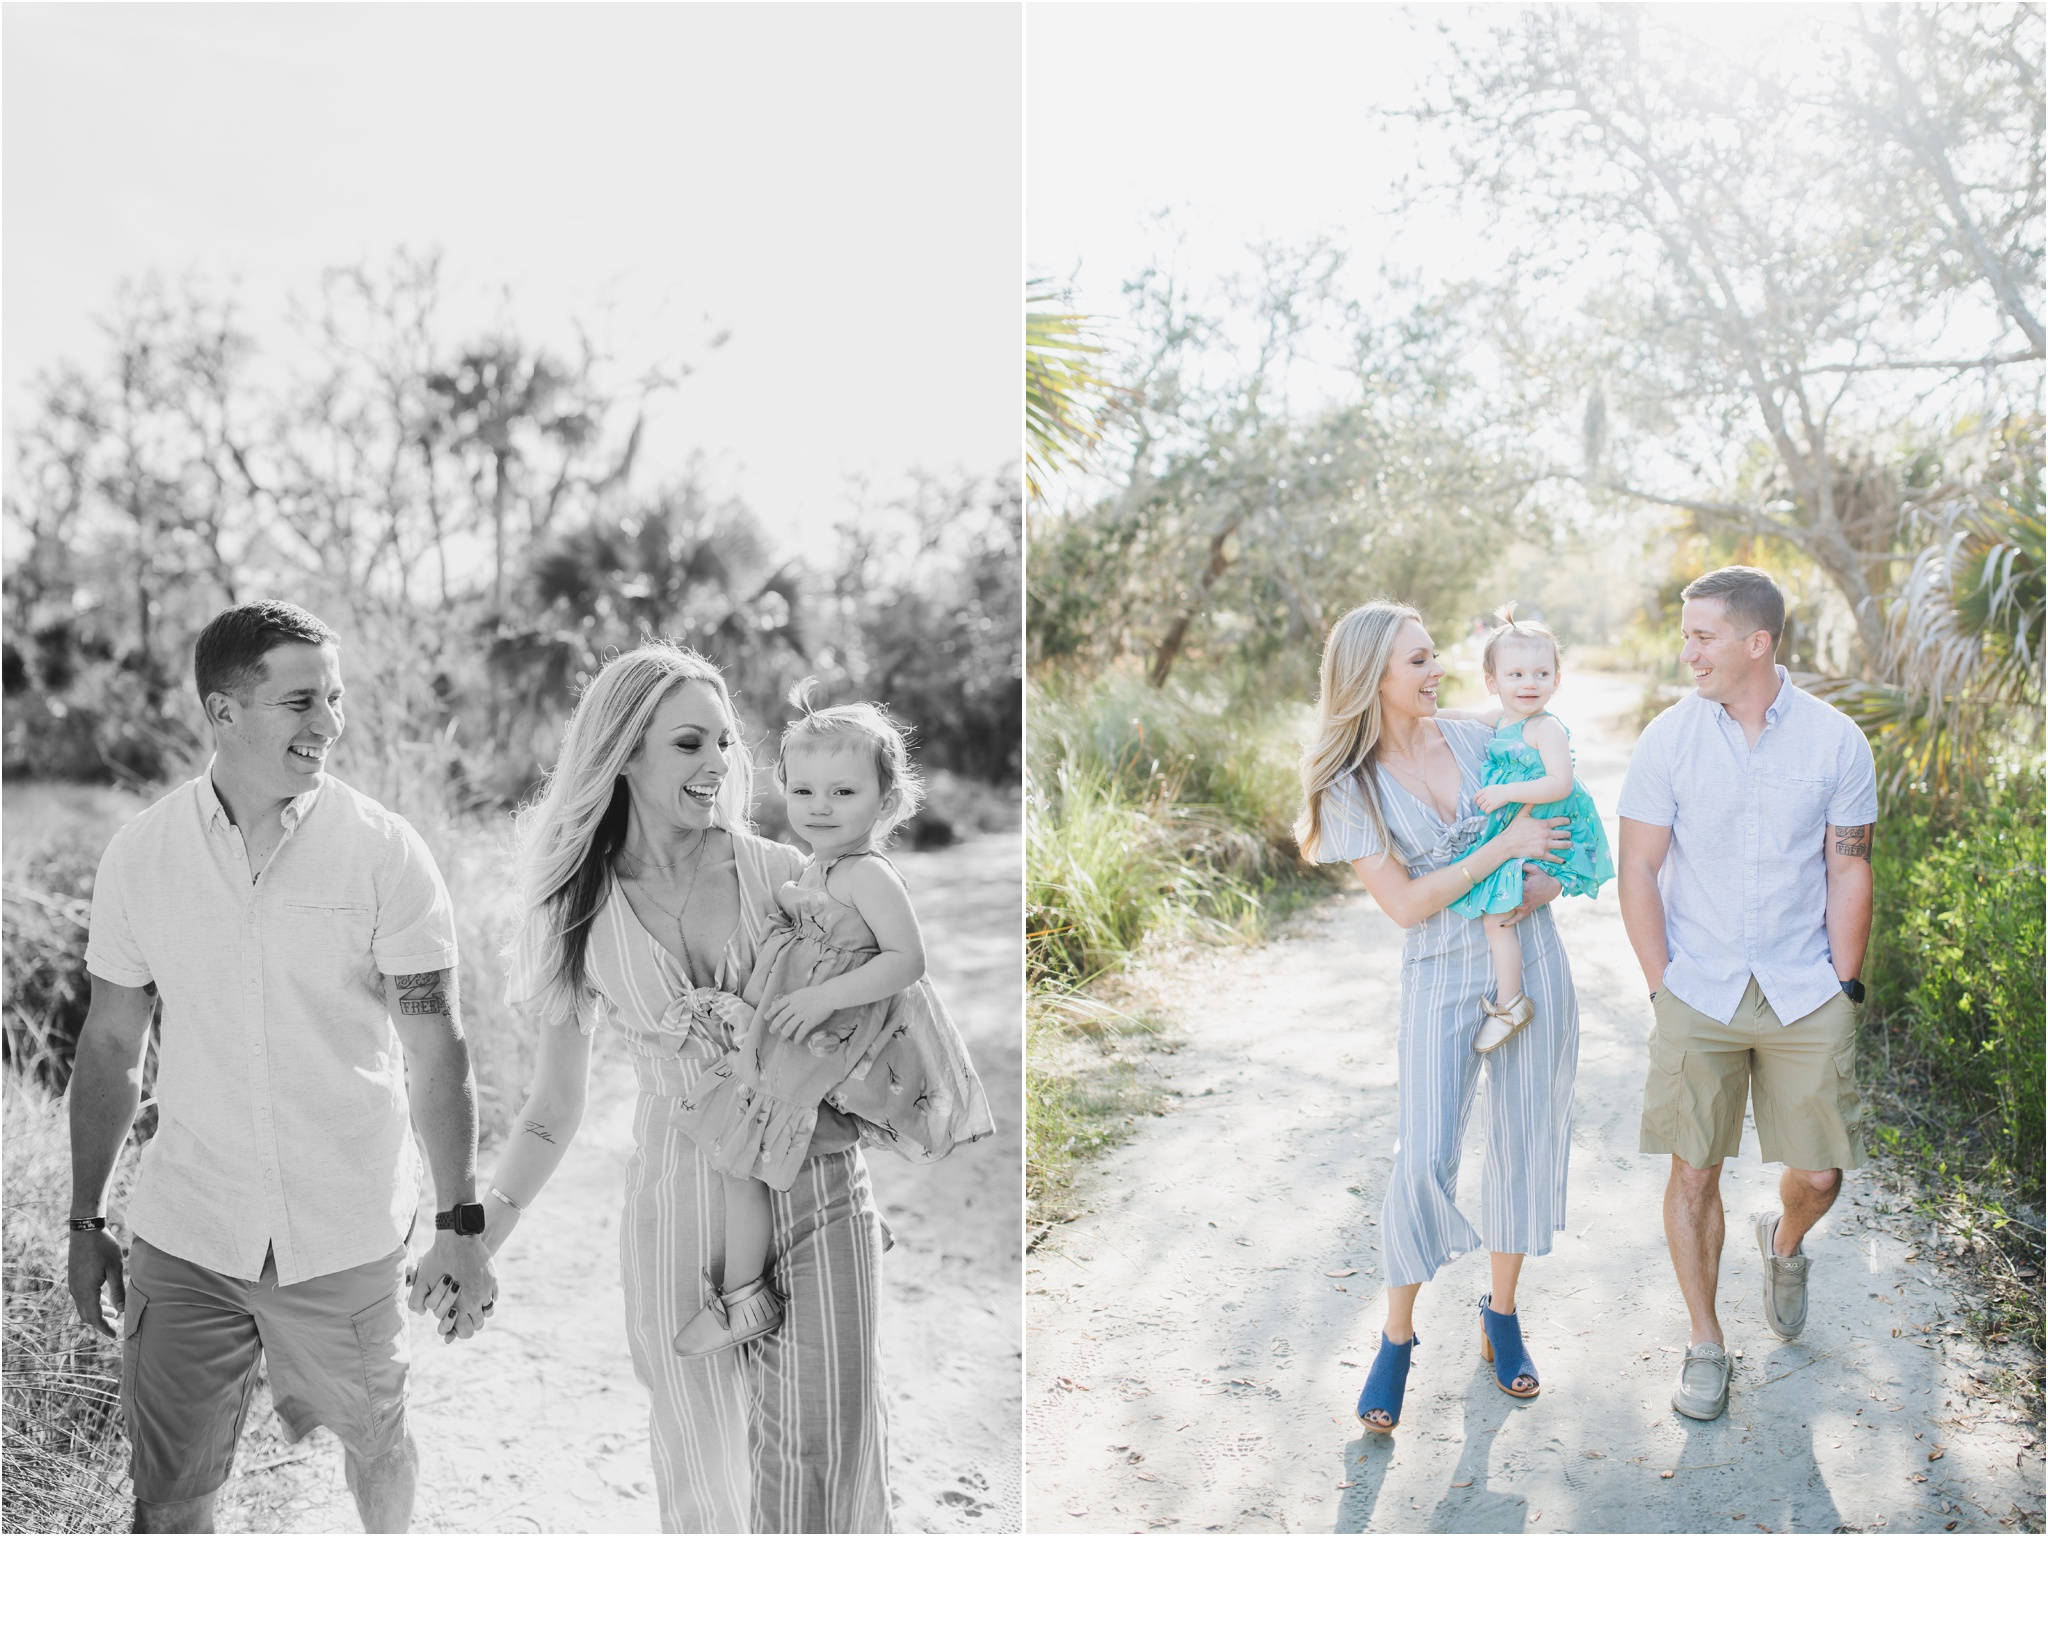 Rainey_Gregg_Photography_St._Simons_Island_Georgia_California_Wedding_Portrait_Photography_1771.jpg